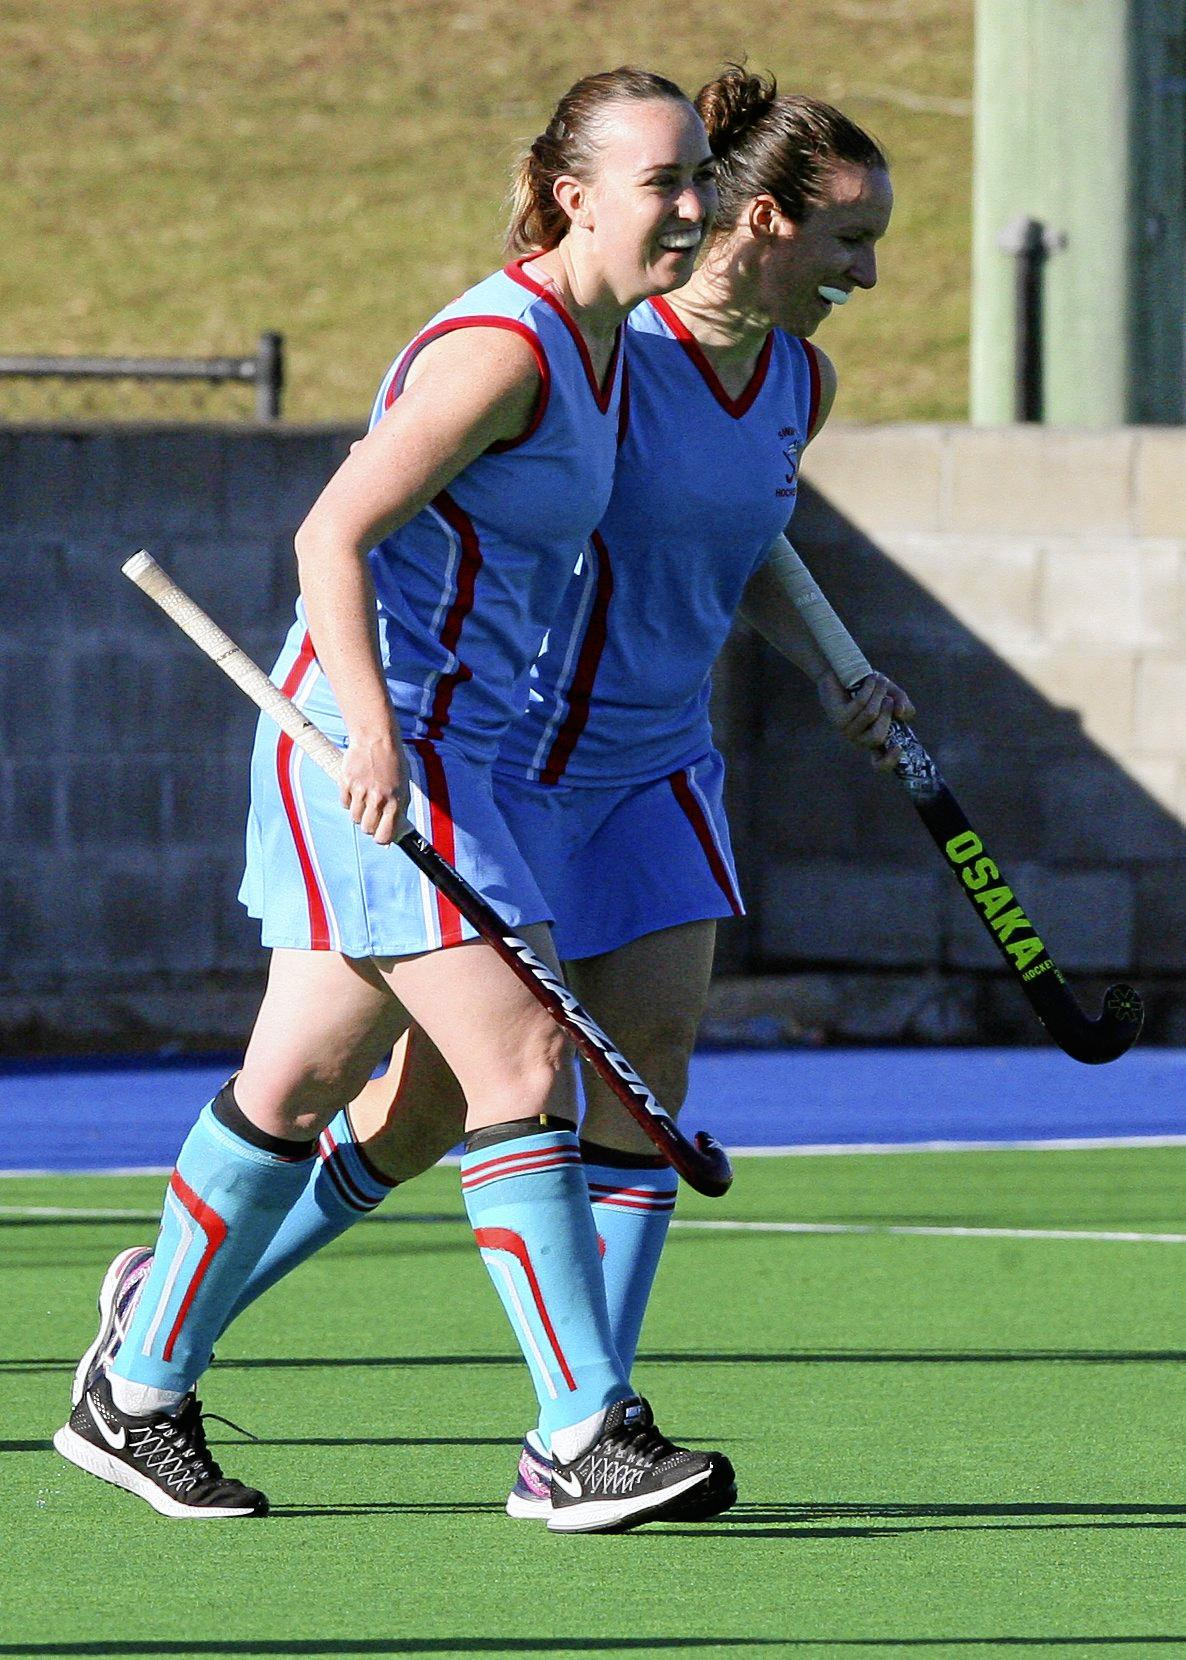 Women's A Grade Hockey: Wests vs Swifts. Swifts players Hannah Sanderson and Amanda Stacey celebrating a goal.